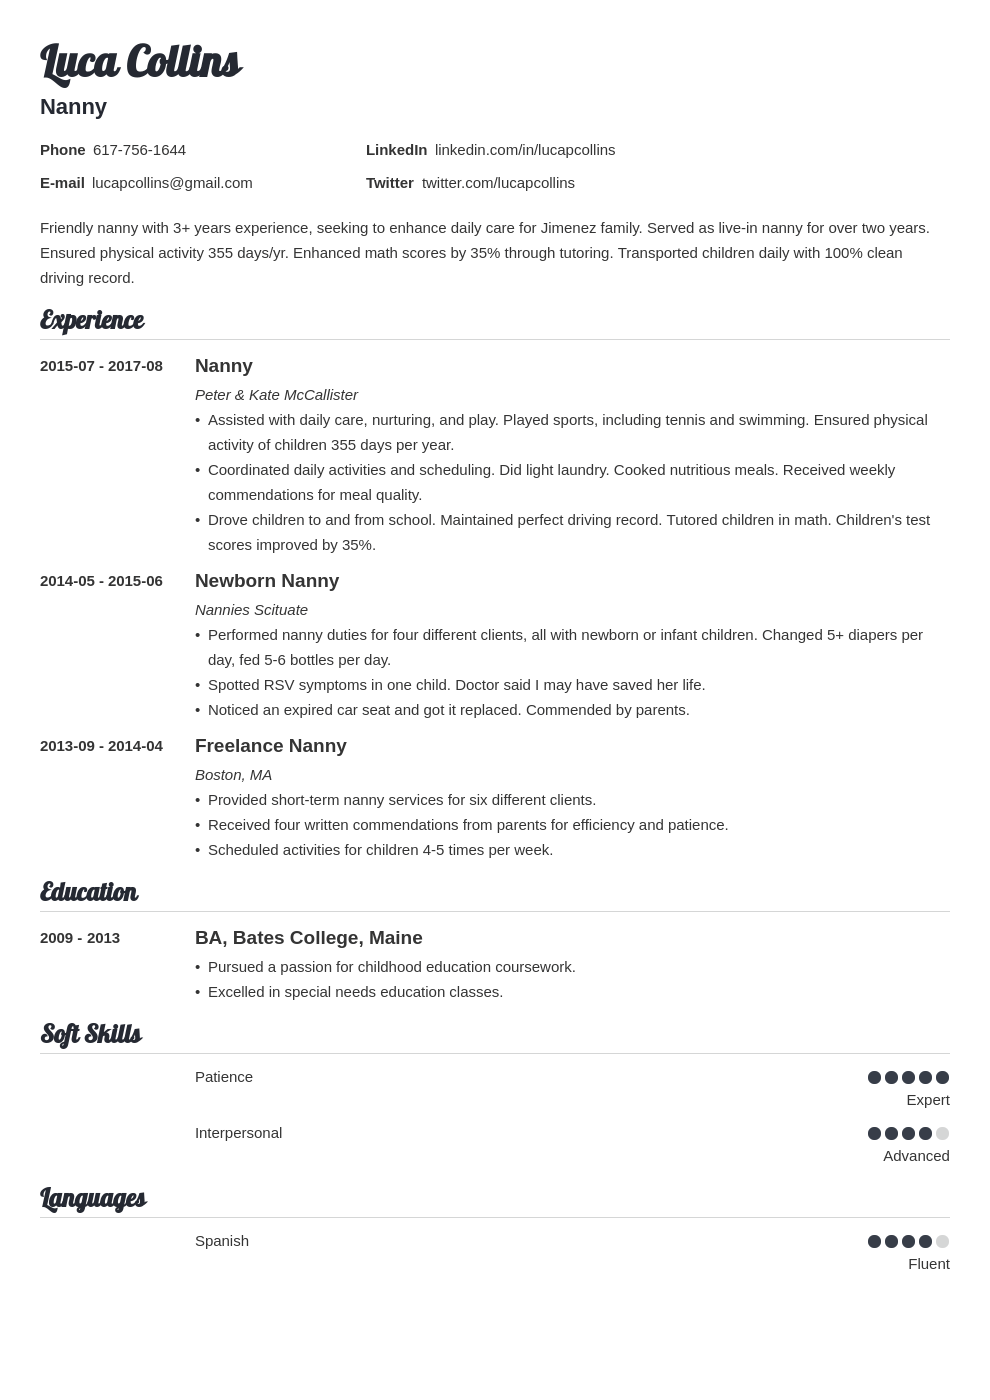 nanny resume example template valera in 2020 Resume